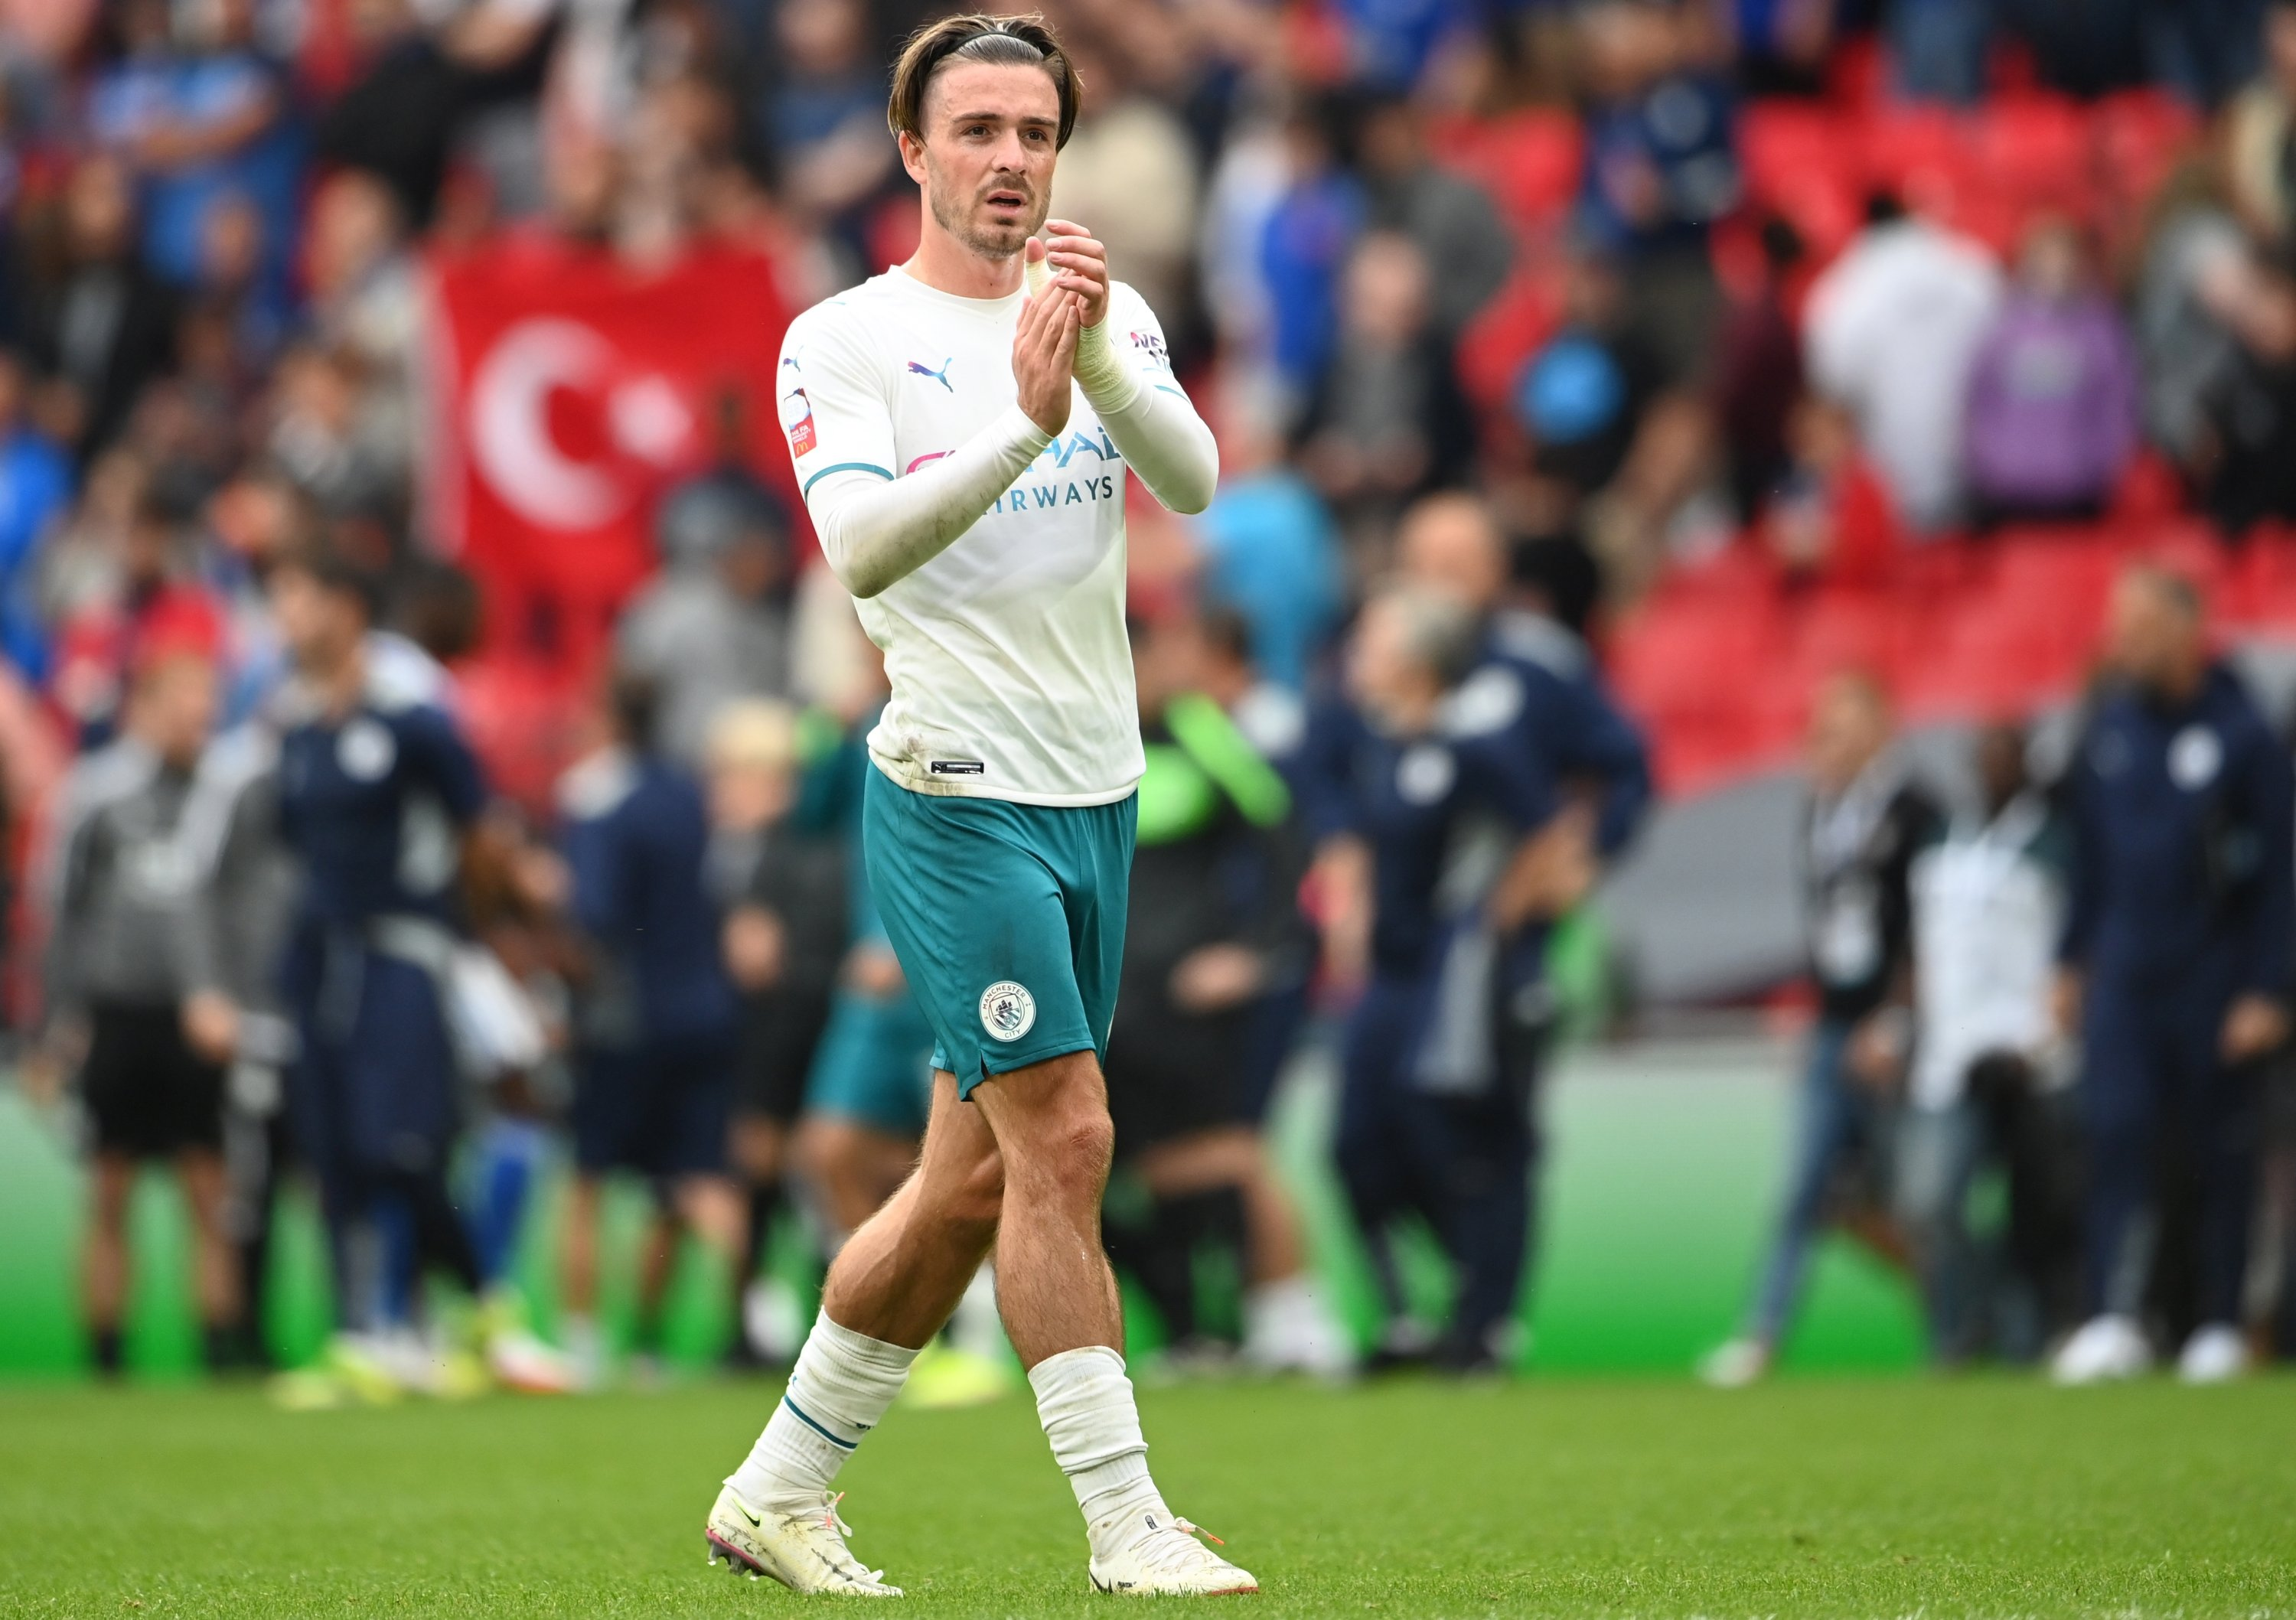 Manchester City's new recruit Jack Grealish (L) during the FA Community Shield match against Leicester City at the Wembley stadium in London, England, Aug. 7, 2021. (EPA Photo)